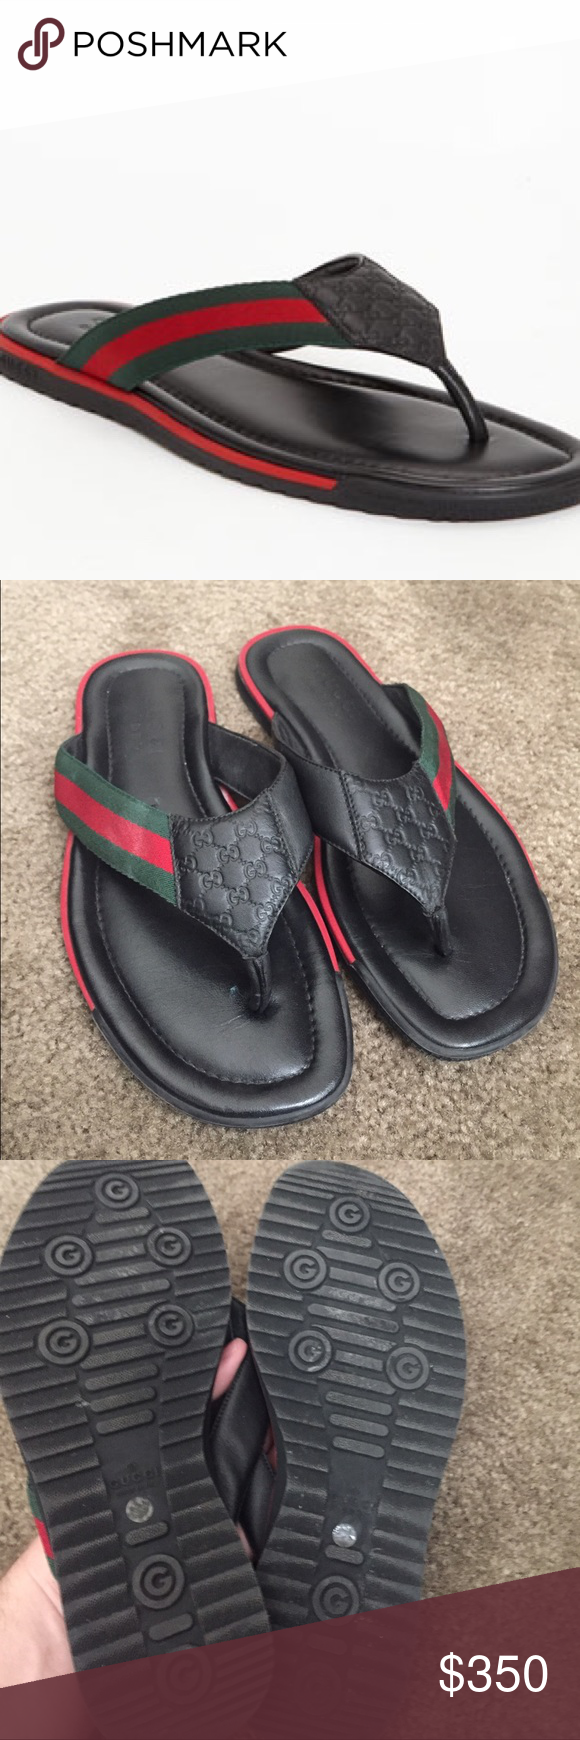 6a7f0f5882e Gucci Men s SL 73 leather sandals 7.5 8.5 Men s Gucci sandals feature  embossed micro guccisima printed leather with signature red and green  webbing. Size ...